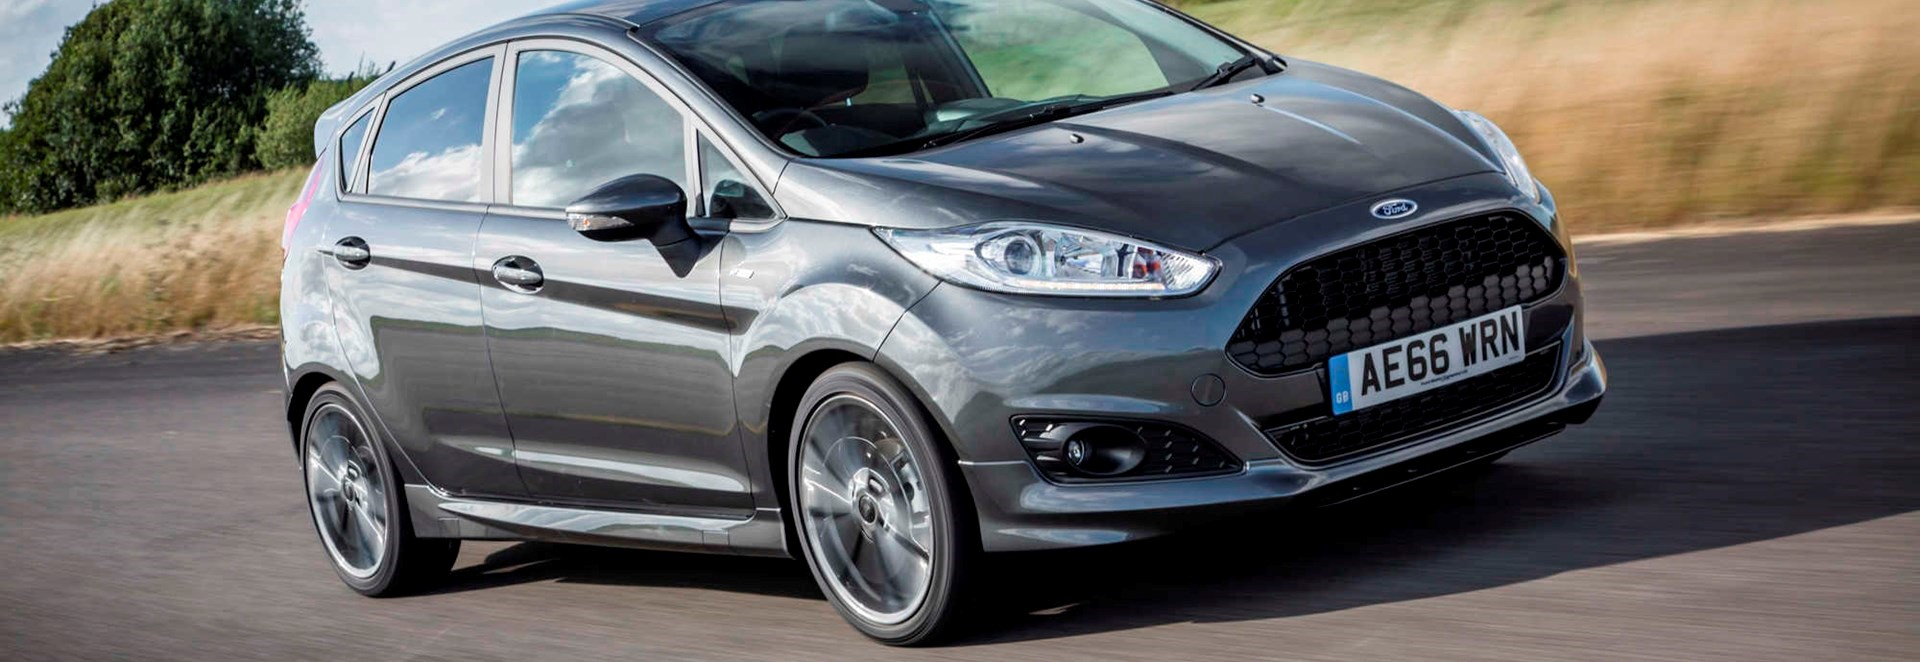 ford fiesta st line 1 0 litre ecoboost 140 review car keys. Cars Review. Best American Auto & Cars Review